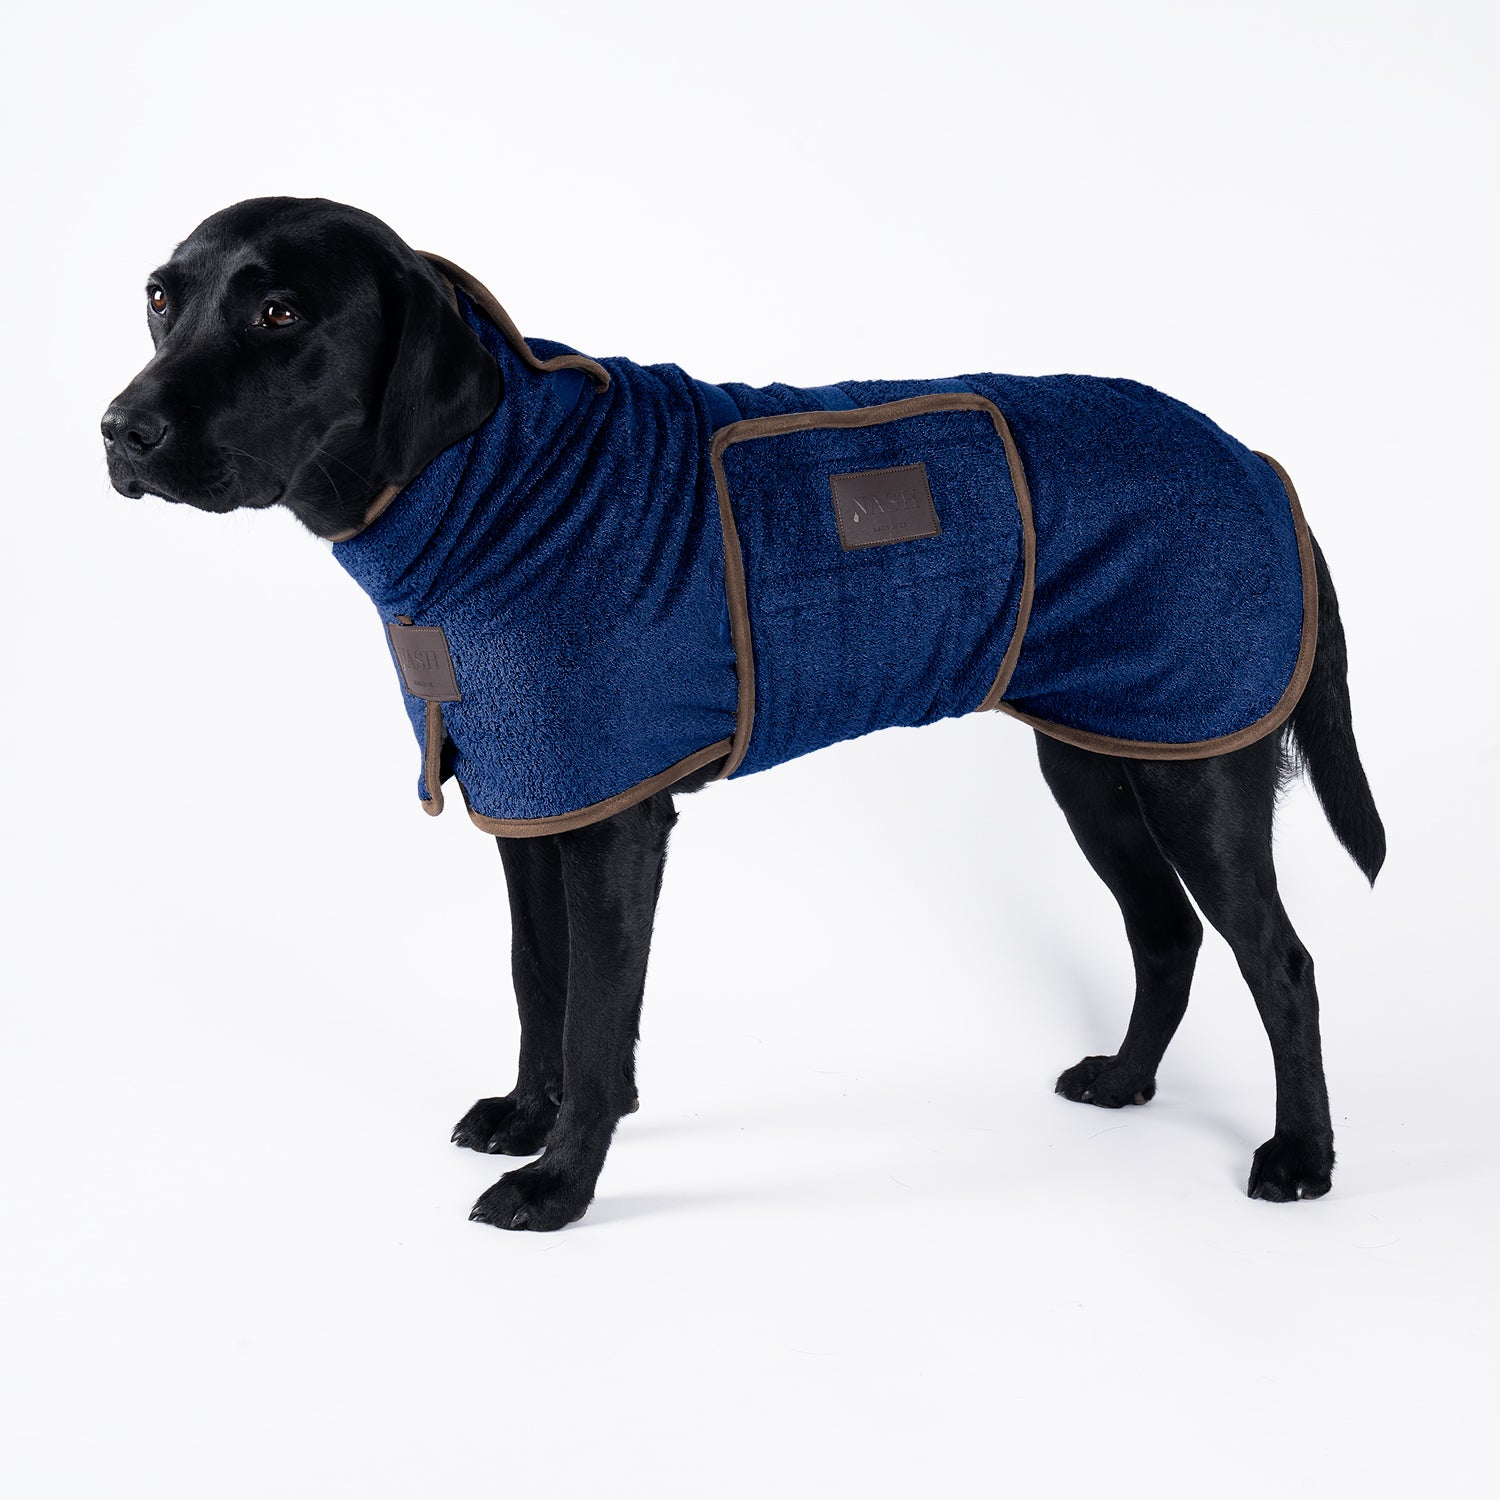 Bamboo Drying Coat - Navy - Shop Bamboo Dog Drying Coats, bed covers, drying mitts & throw Online!